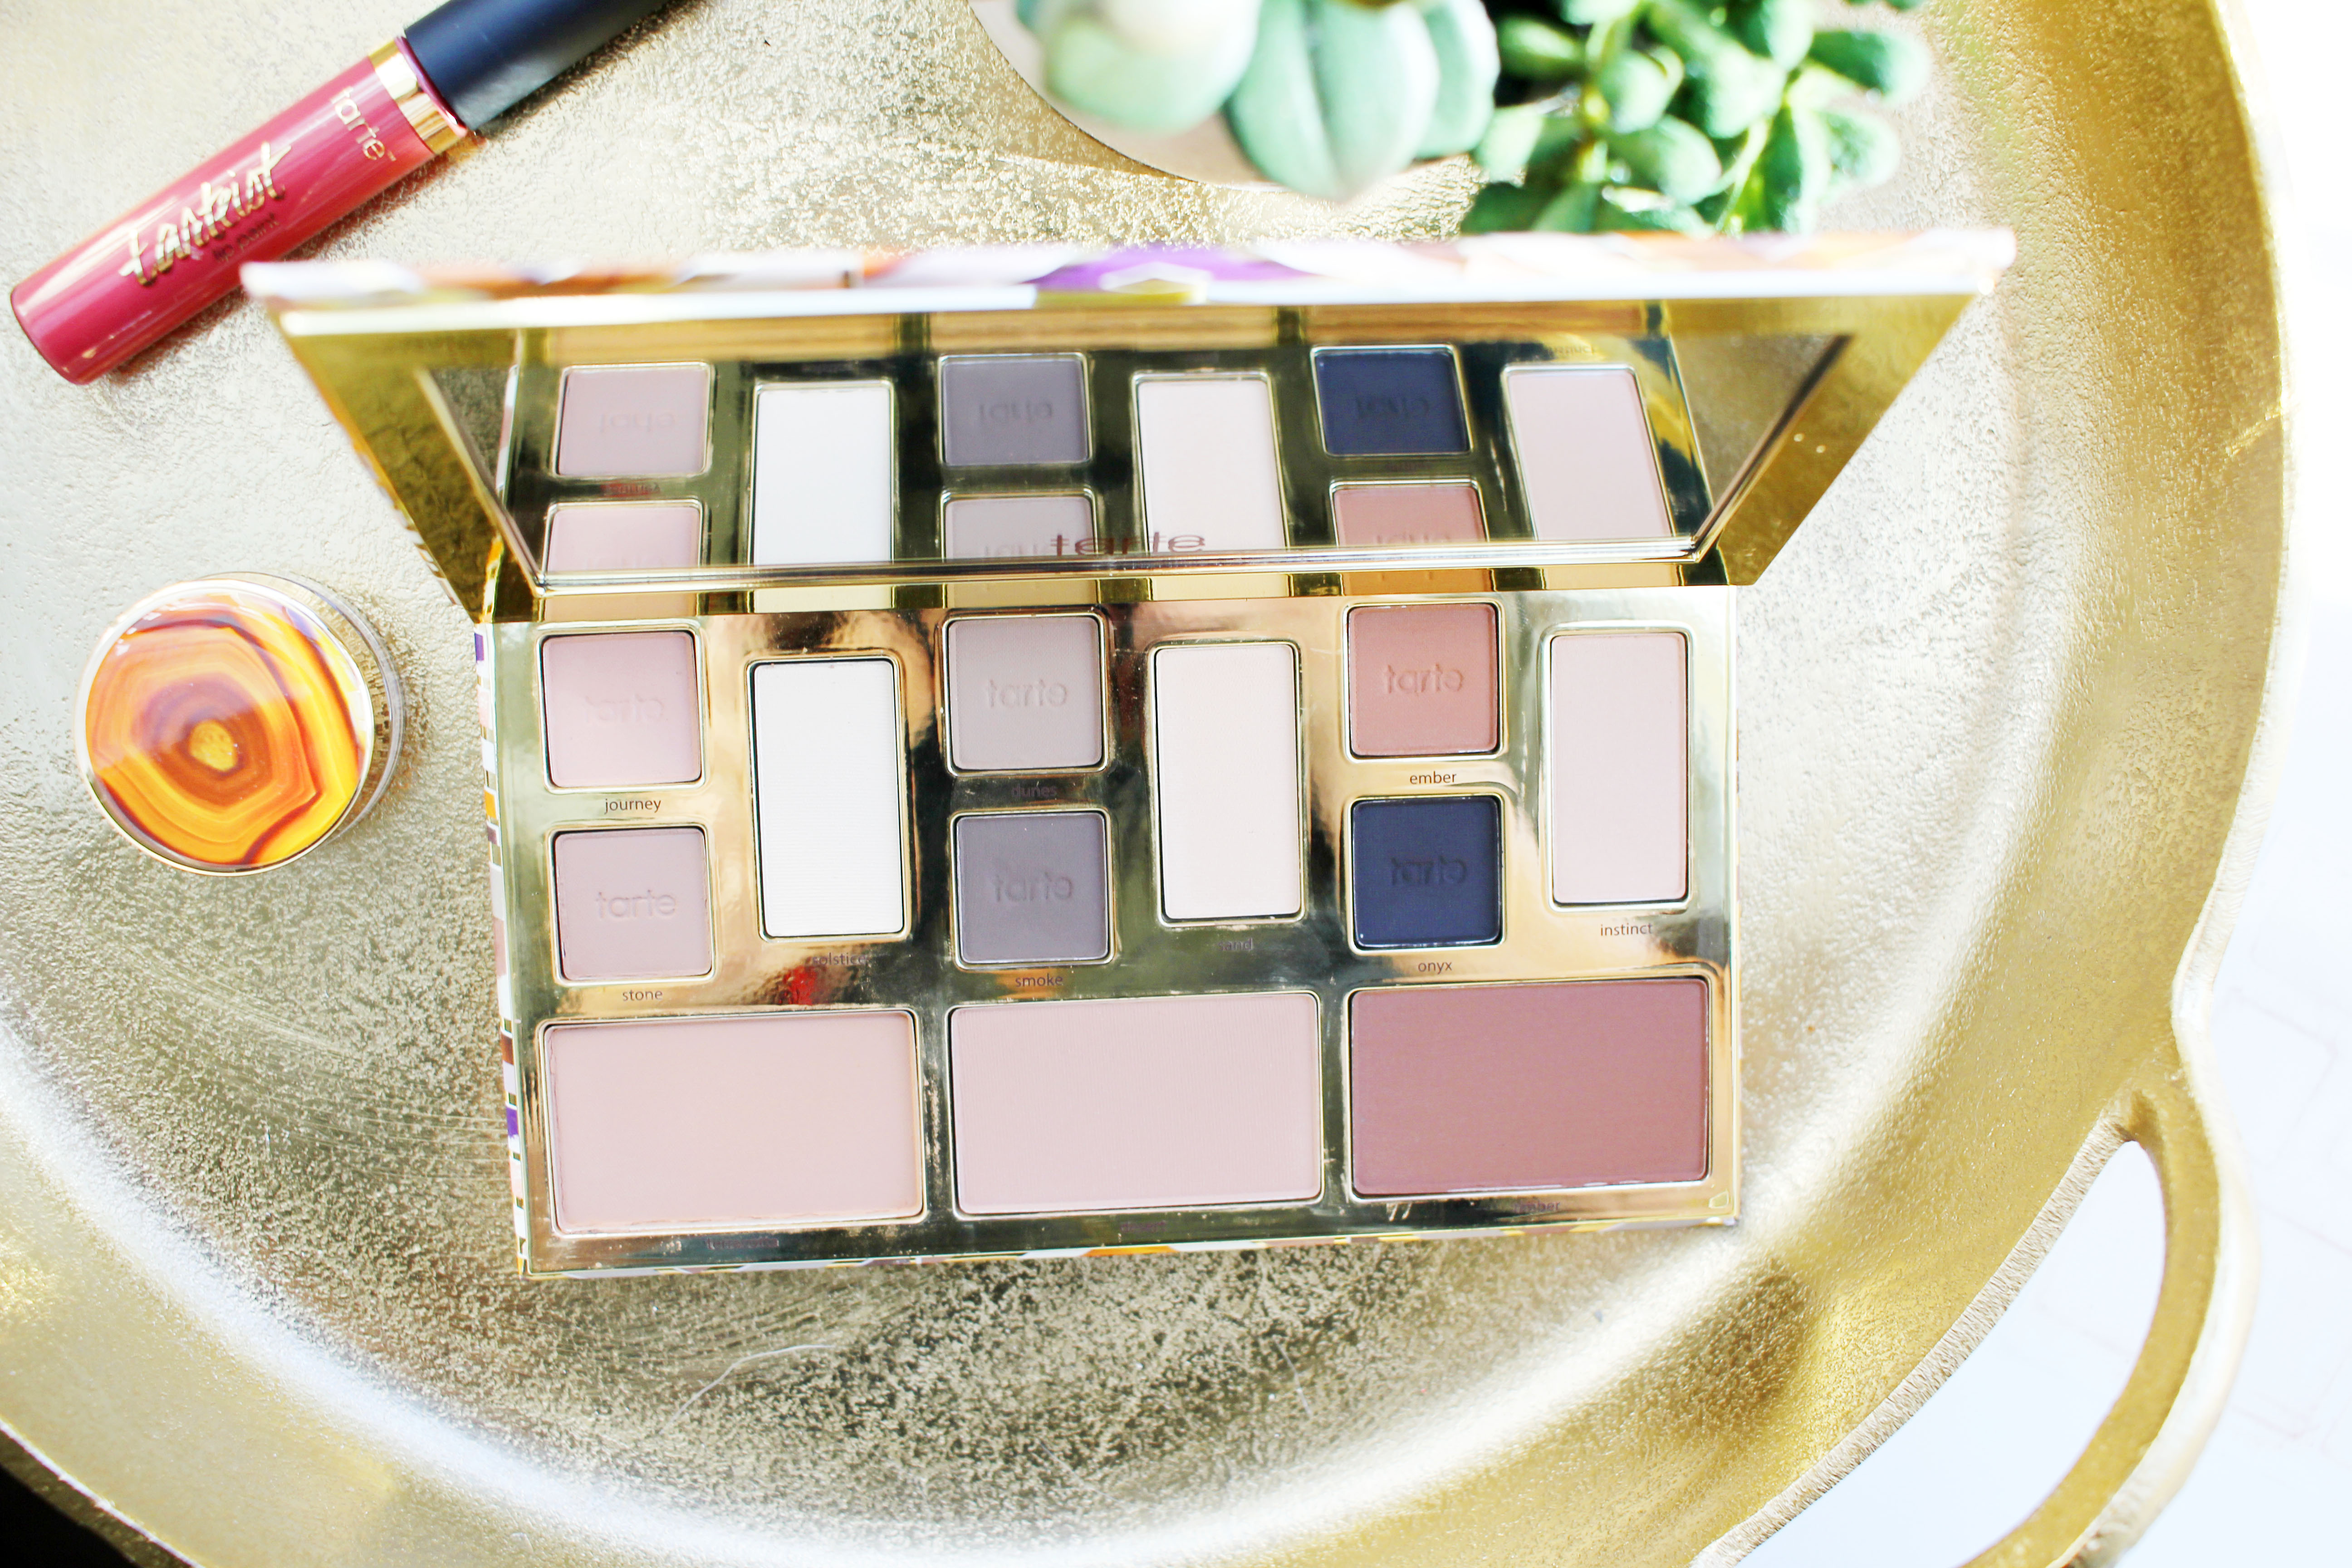 Tarte Clay Play Face Shaping Palette   All in one palette   neutral palette   Tarte Contour palette